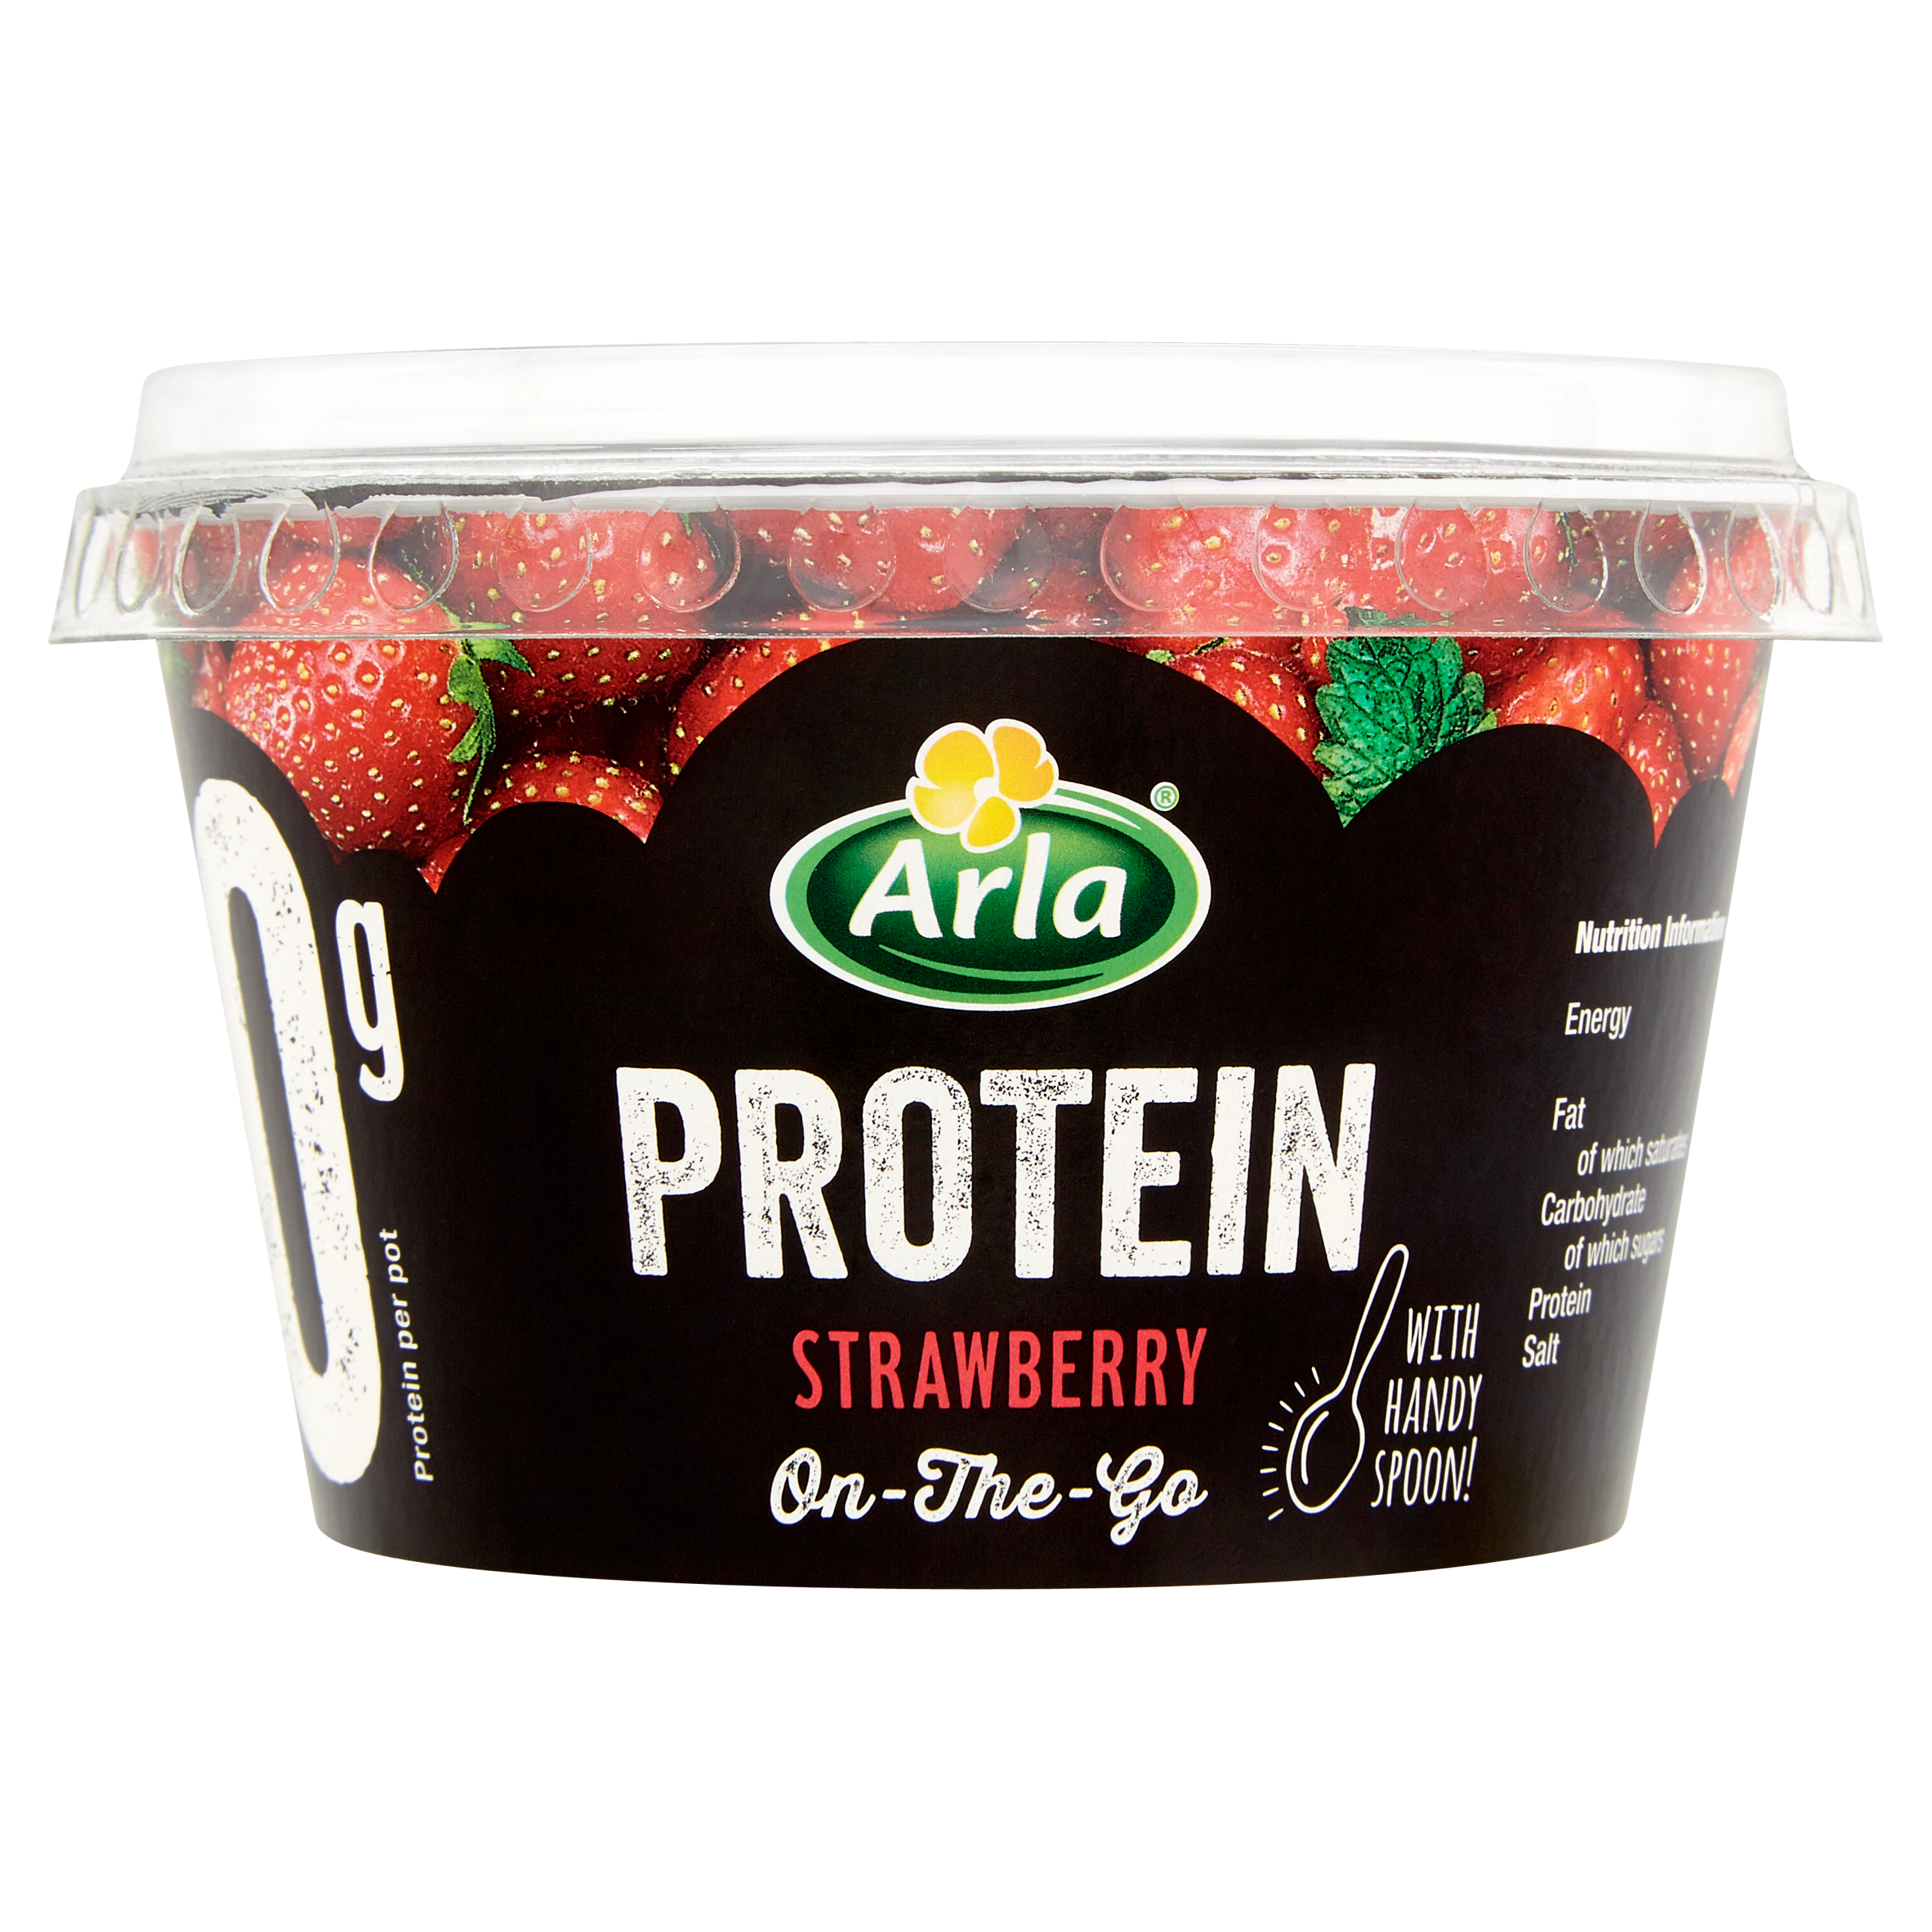 Arla Protein Strawberry with spoon 200g